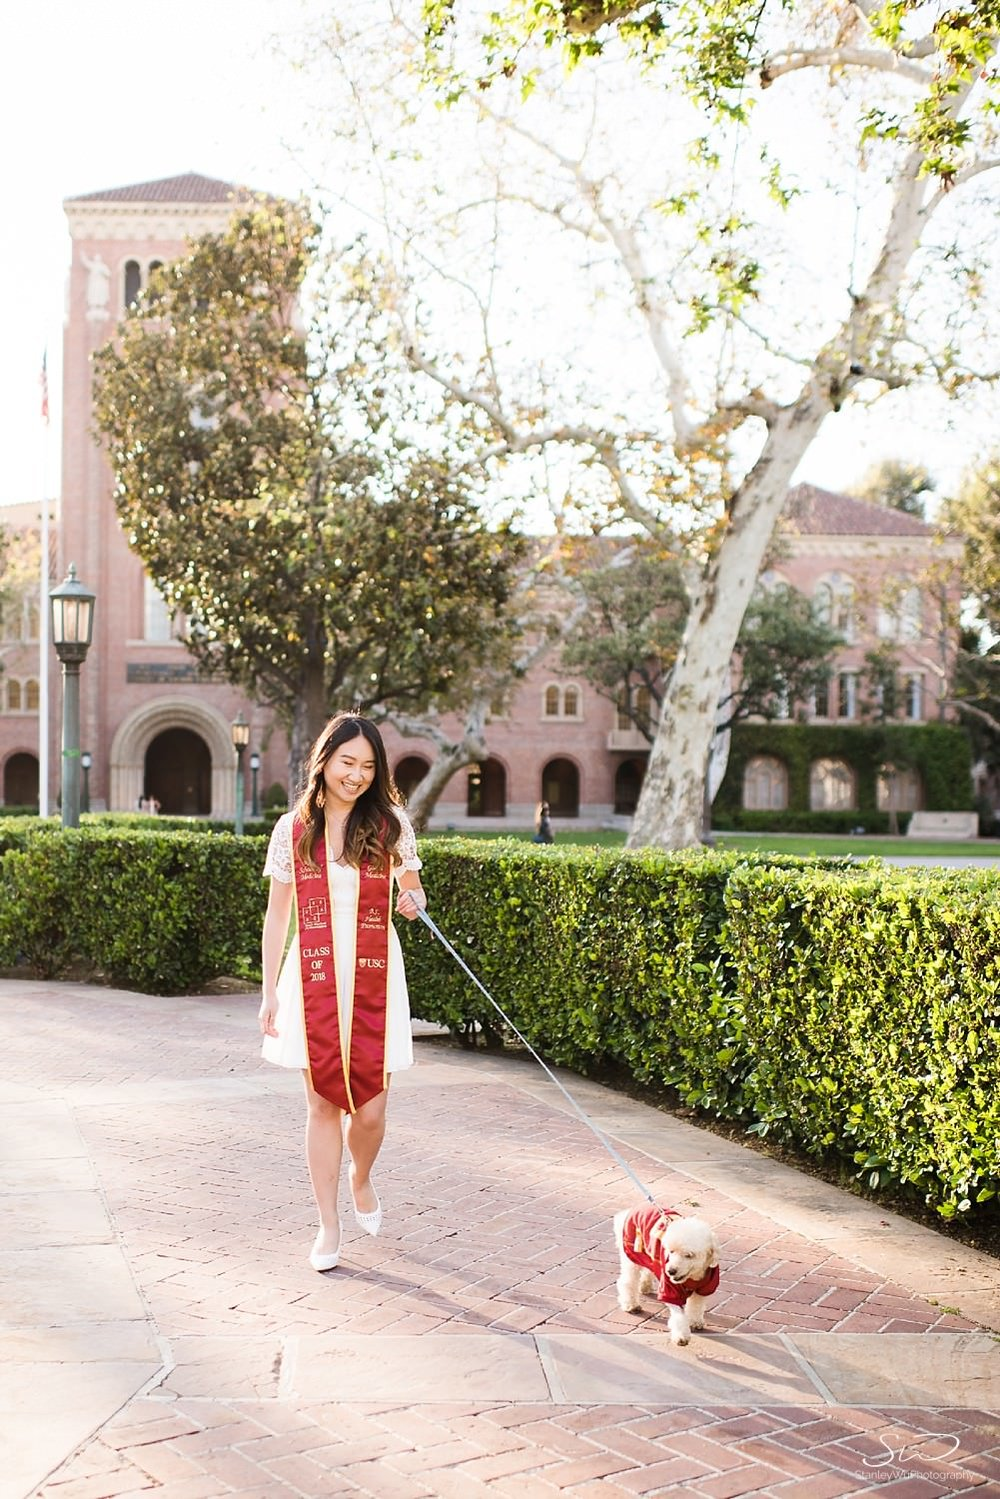 Walking dog at USC | Los Angeles Orange County Senior Portrait & Wedding Photographer